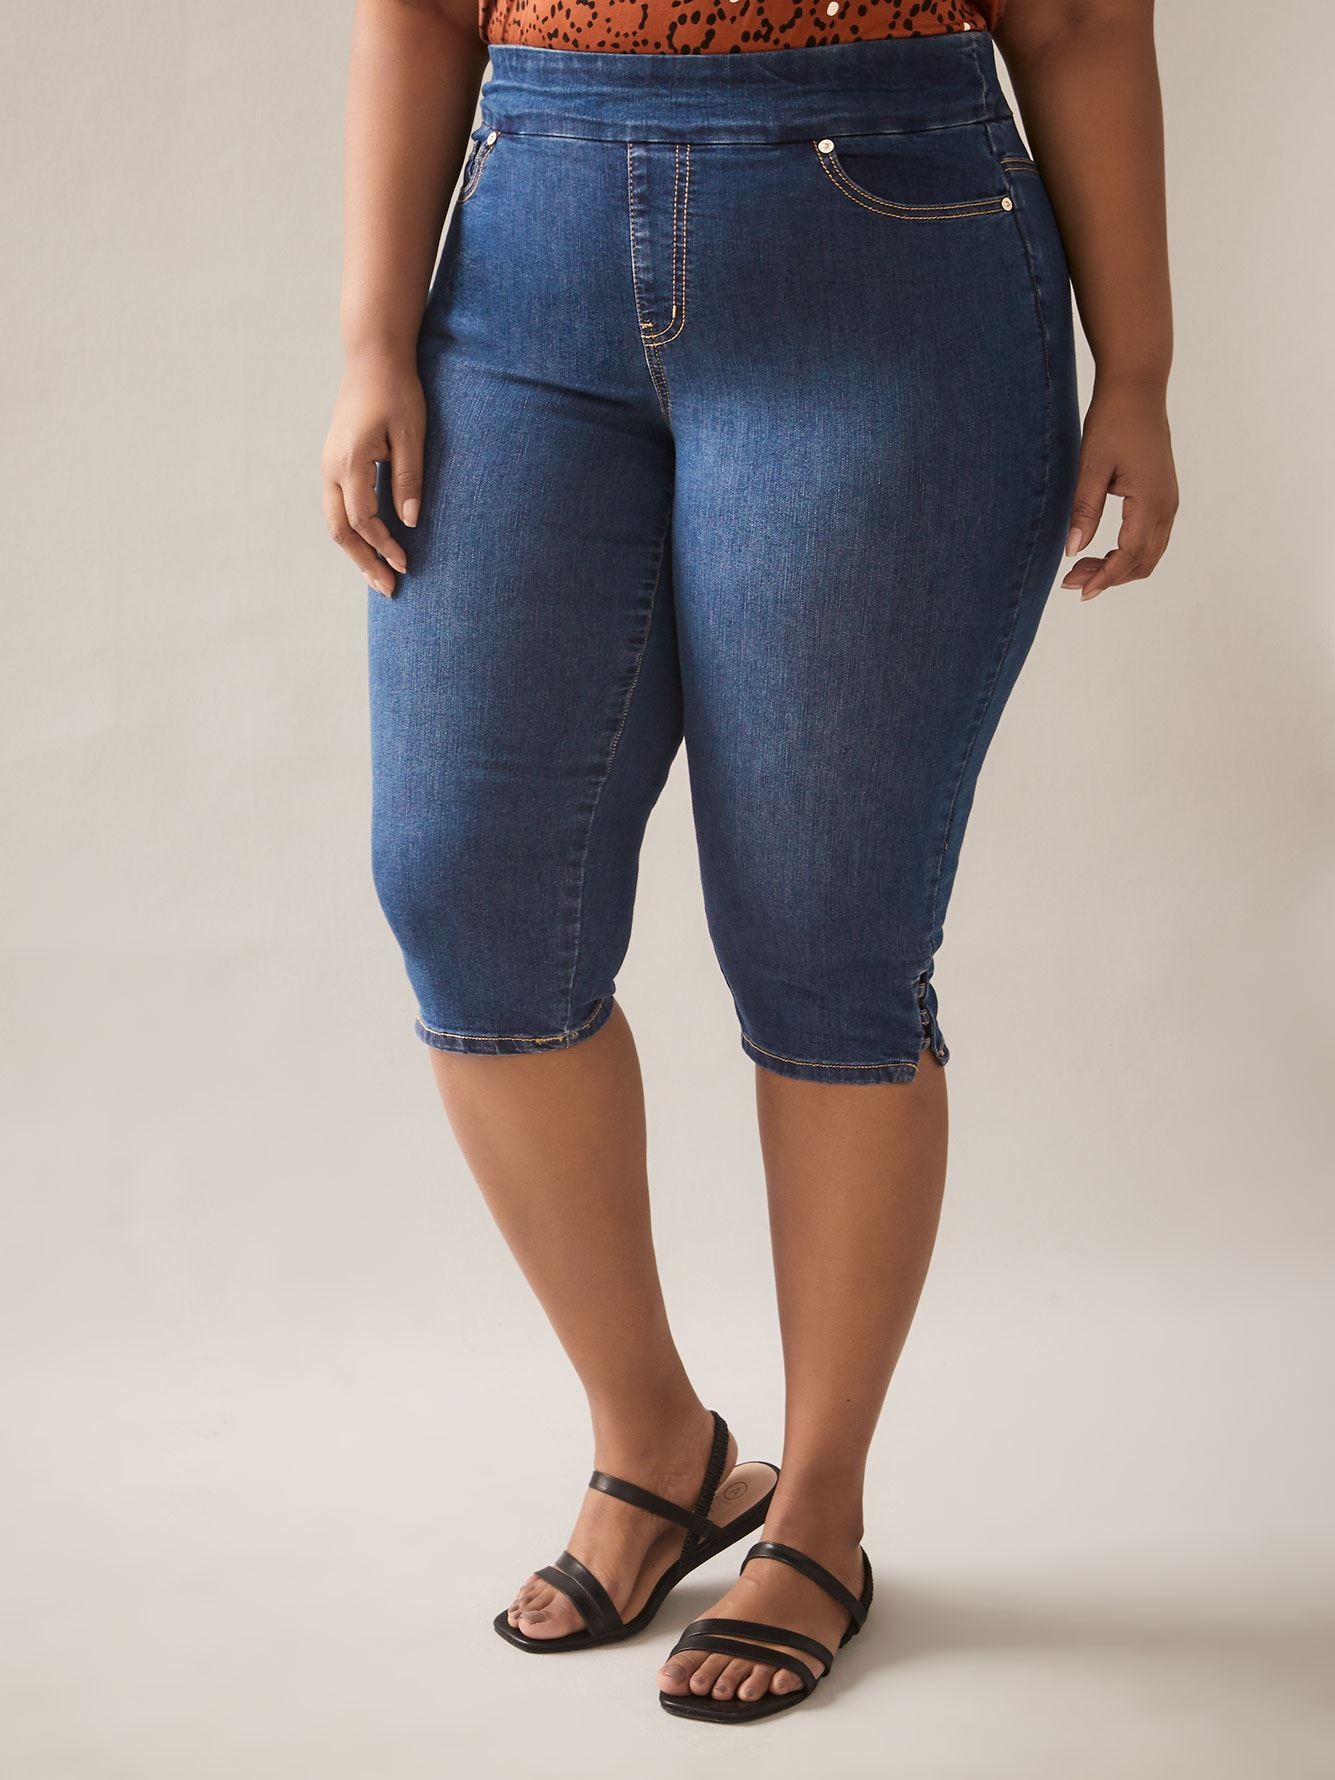 Universal Fit, Savvy Pull On Denim Capri Pant - In Every Story